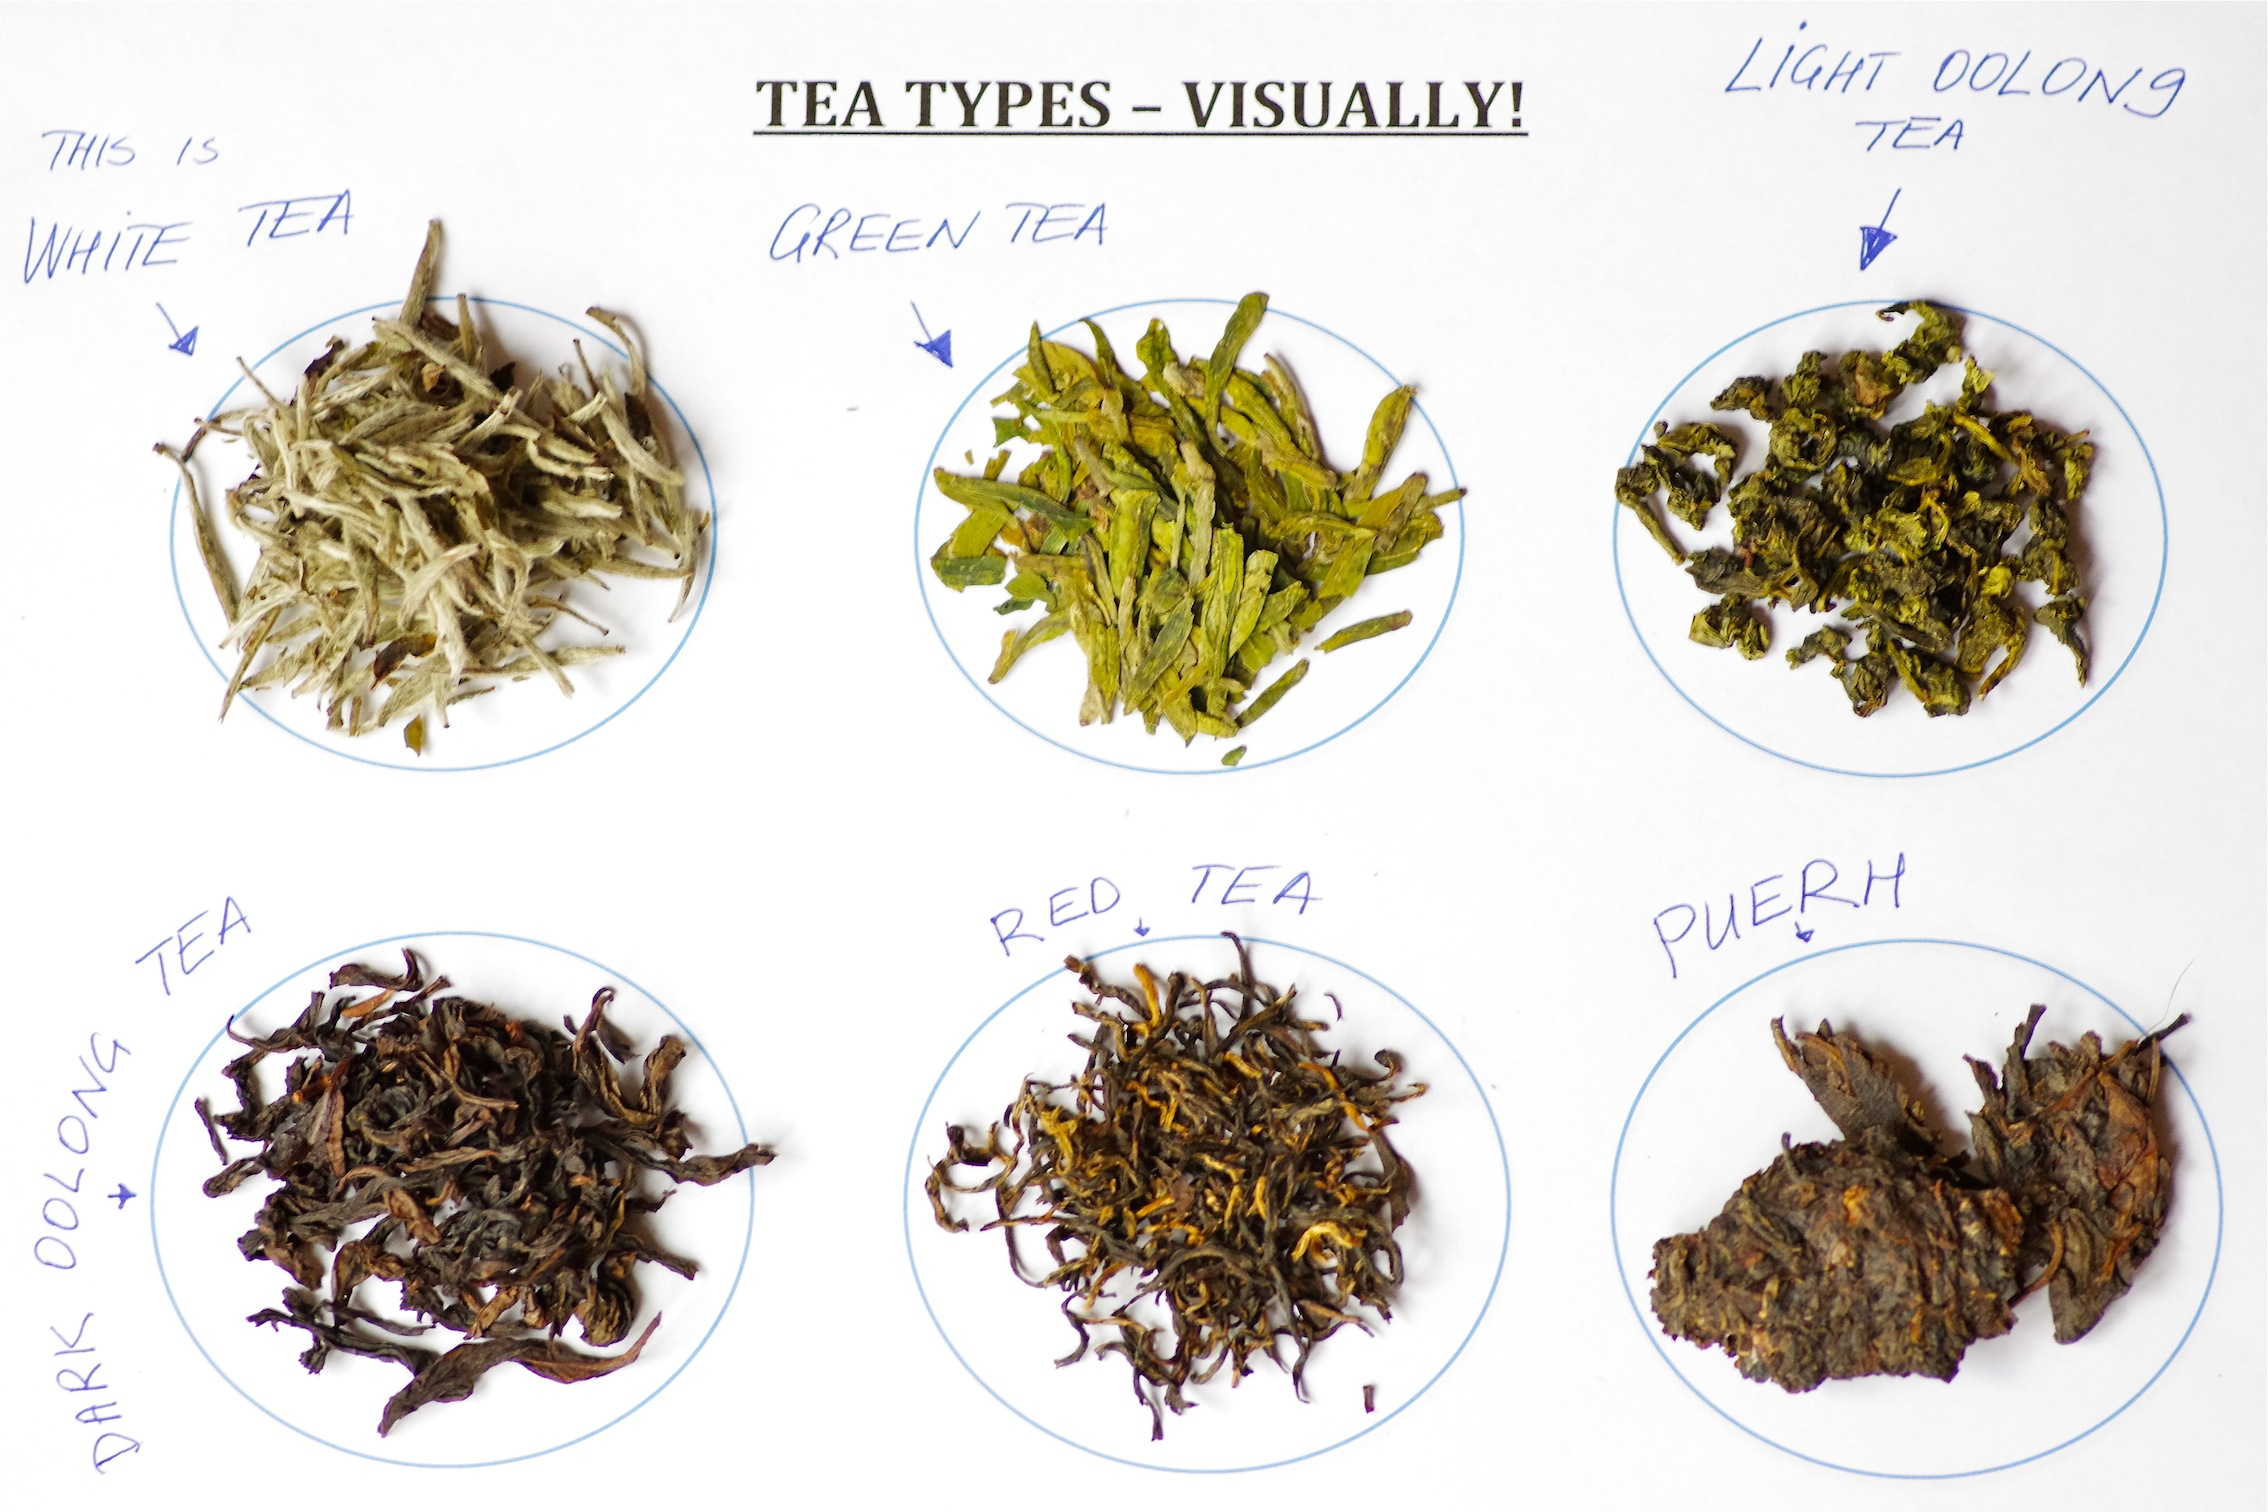 Types of Tea Visually